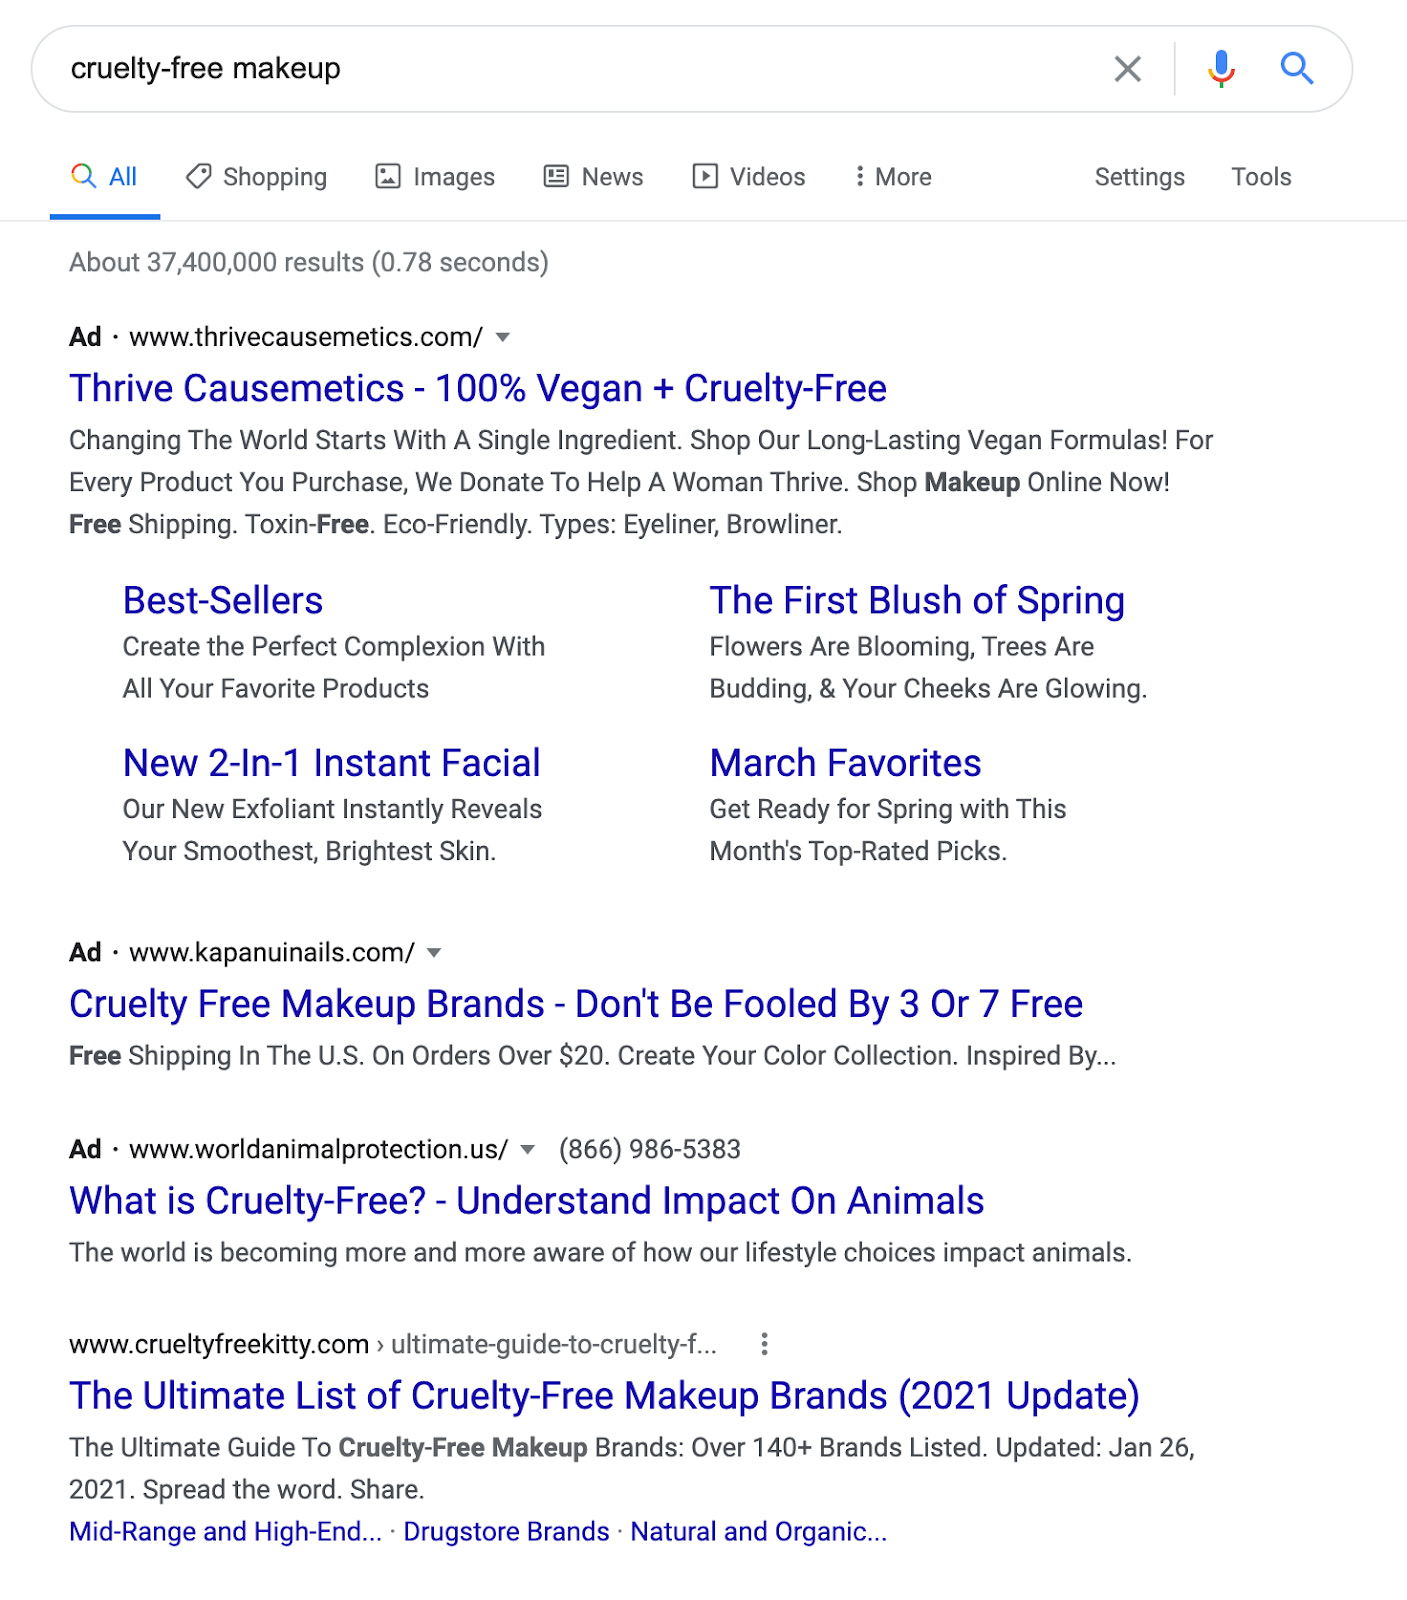 Cruelty-free makeup search